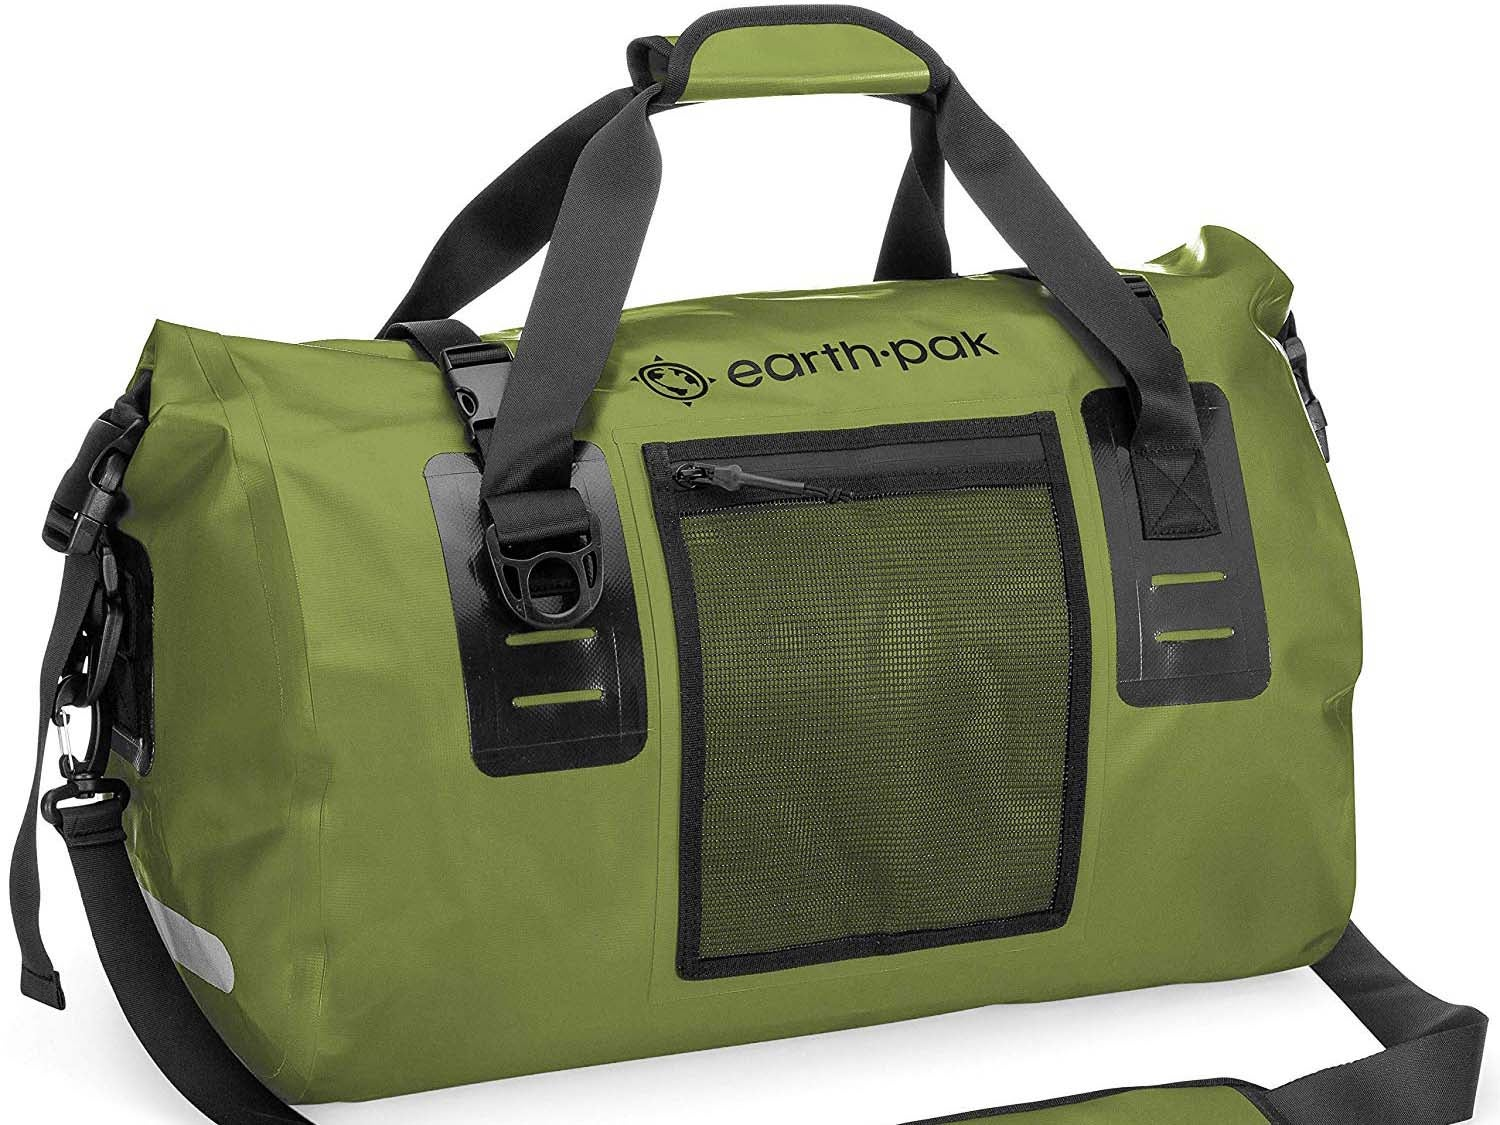 earth pack waterproof duffel bag